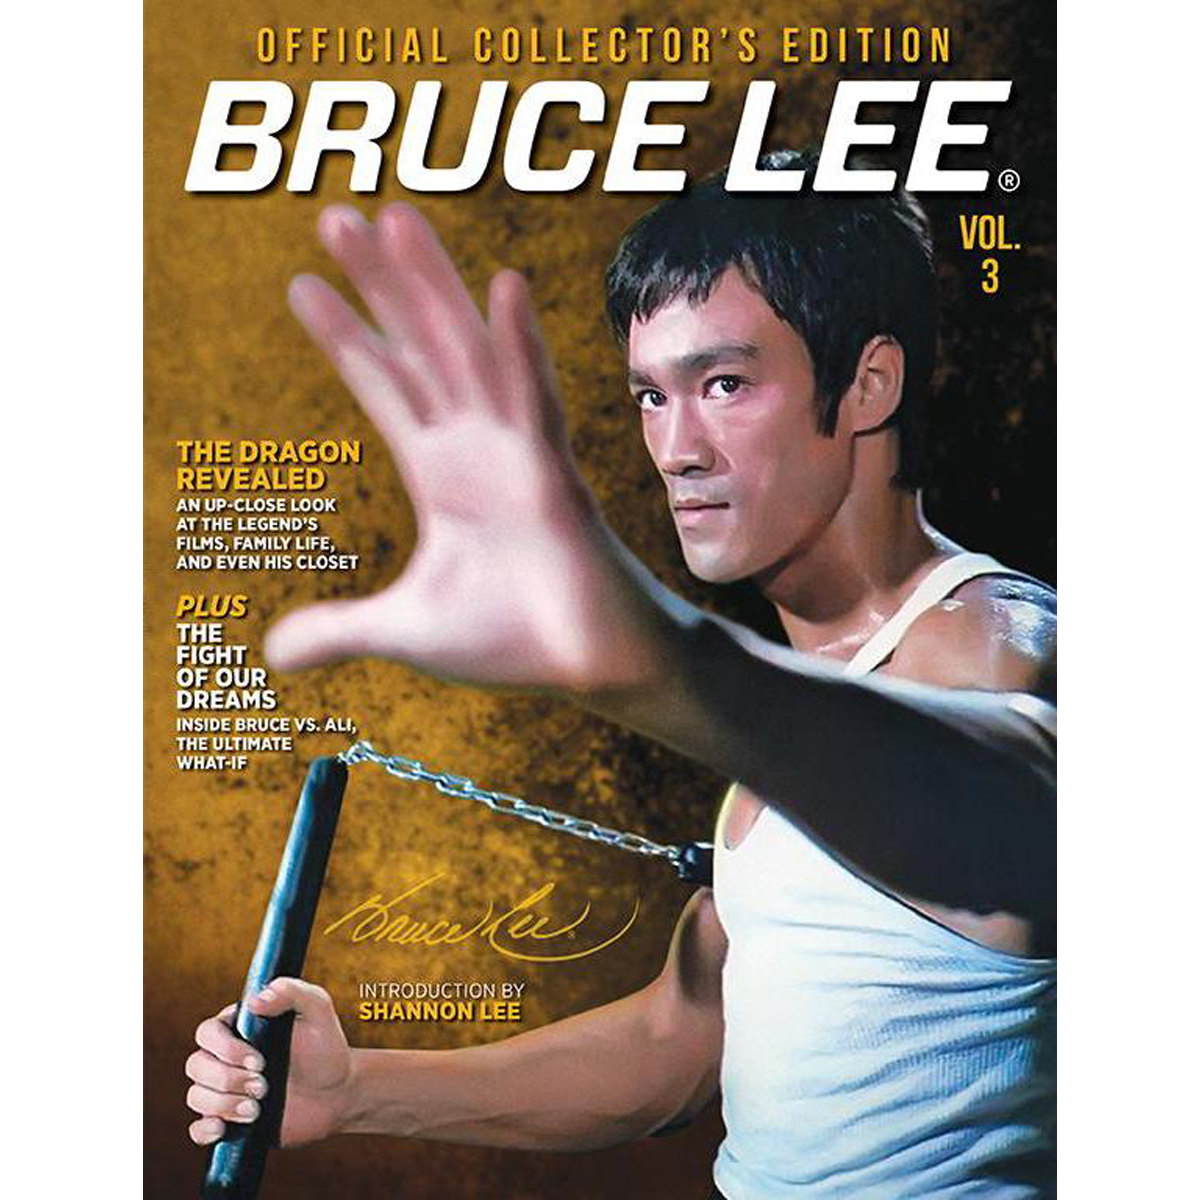 Bruce Lee Official Collector's Edition Vol. 3